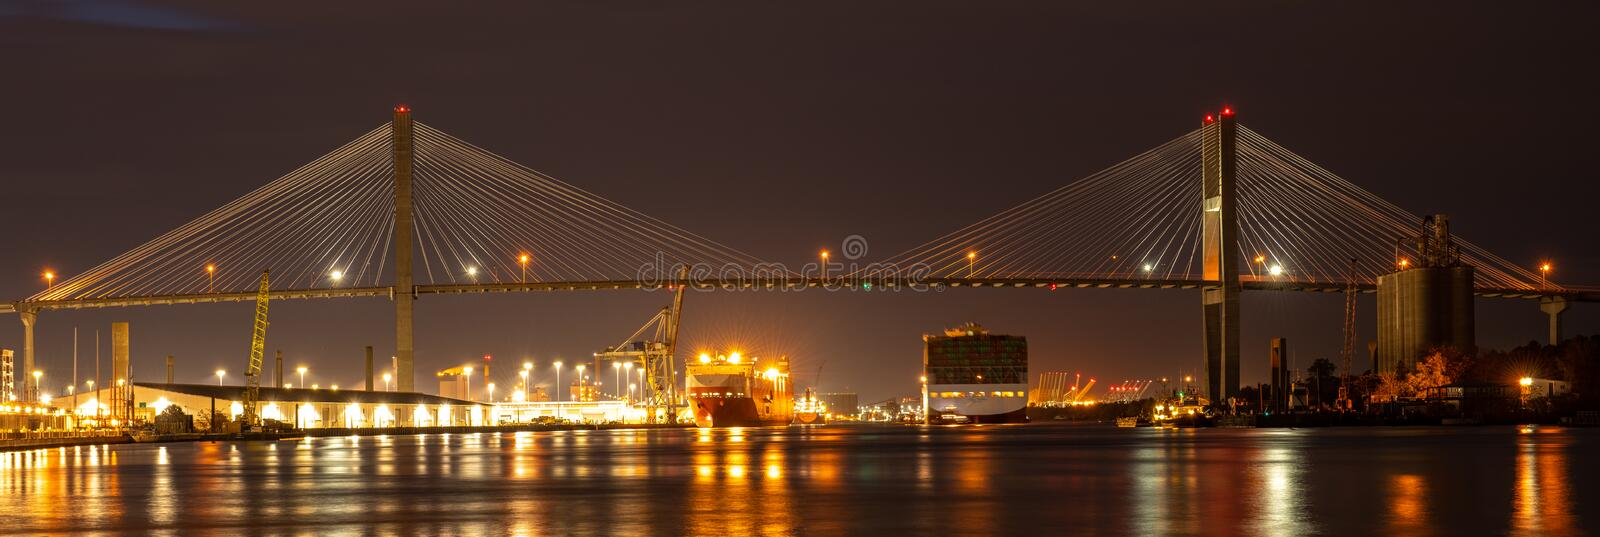 Talmadge Memorial Bridge is een brug in de Verenigde Staten die de Savannah-rivier overspant tussen Savannah, Georgia en royalty-vrije stock foto